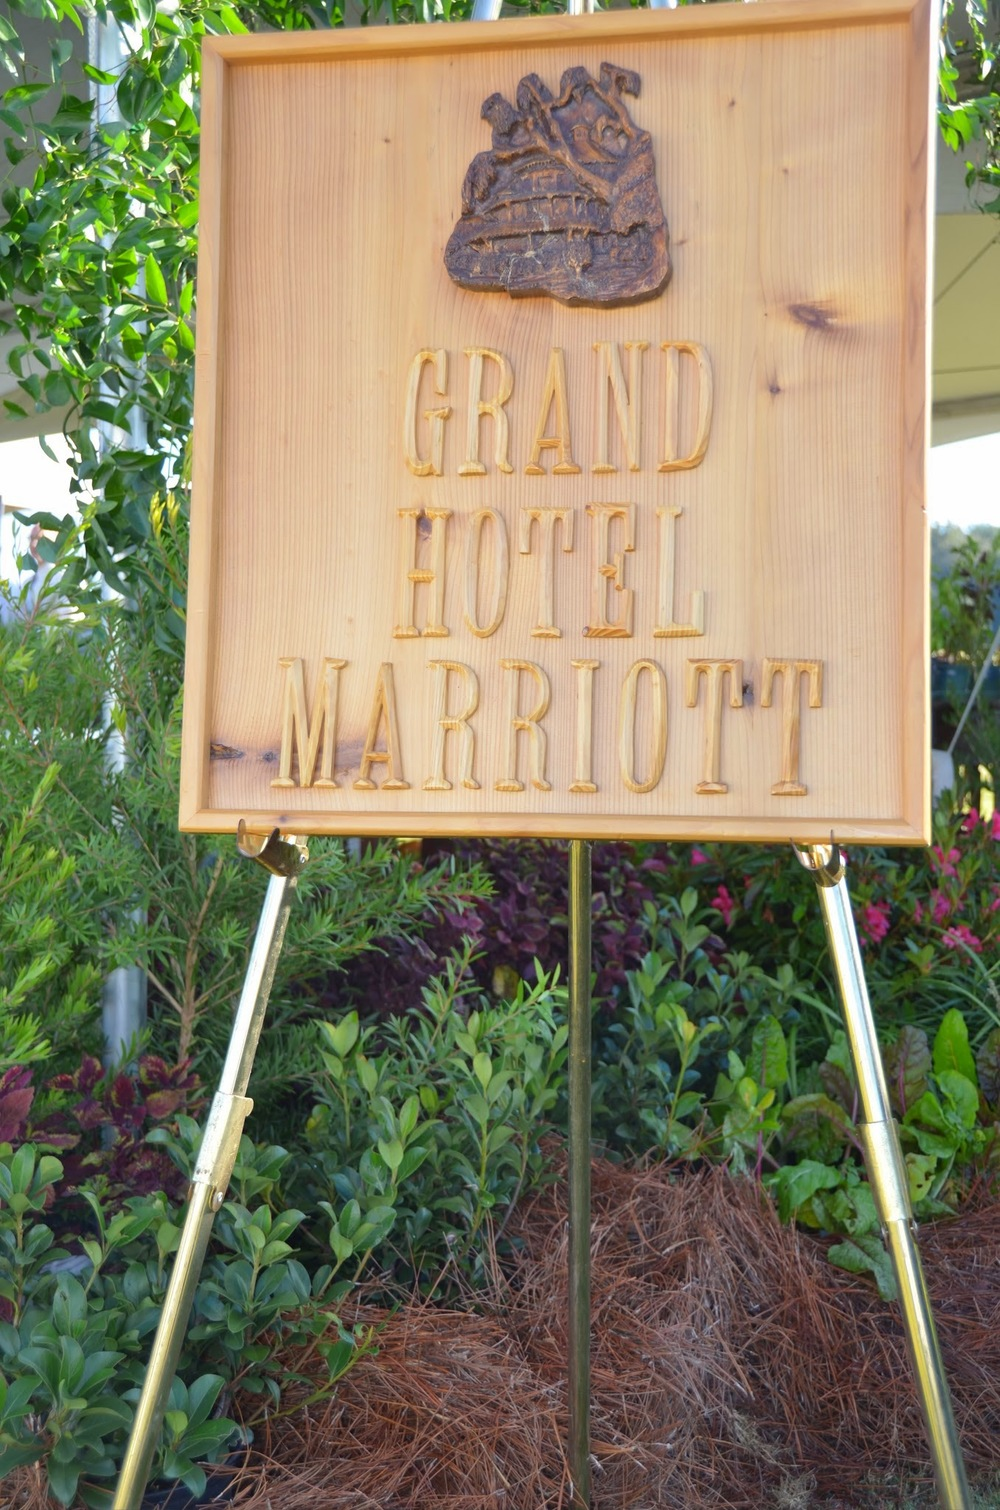 Grand Hotel Marriott sign